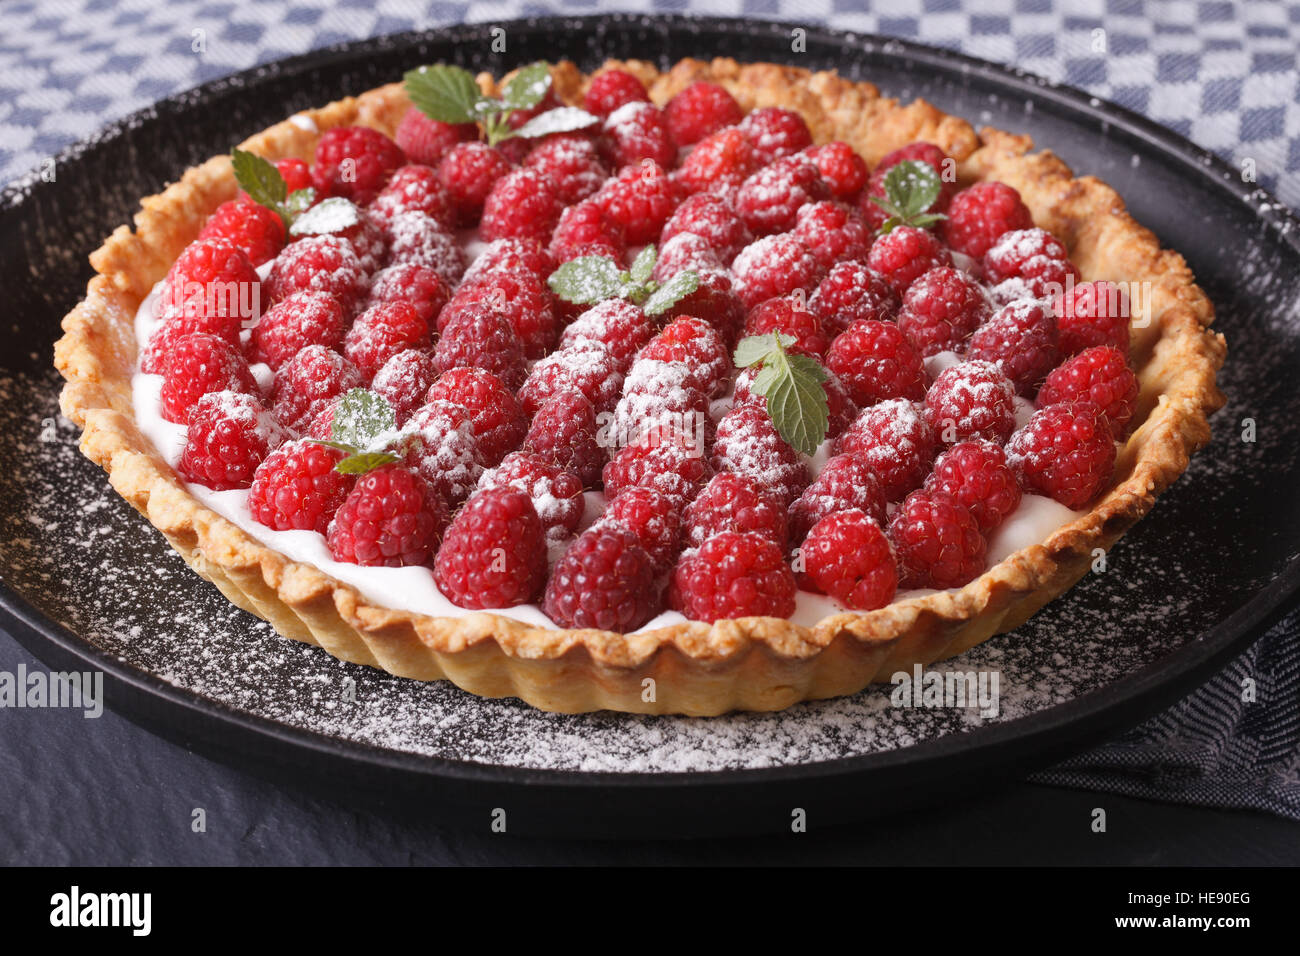 Delicious tart with fresh raspberries and mint on a plate close-up horizontal - Stock Image